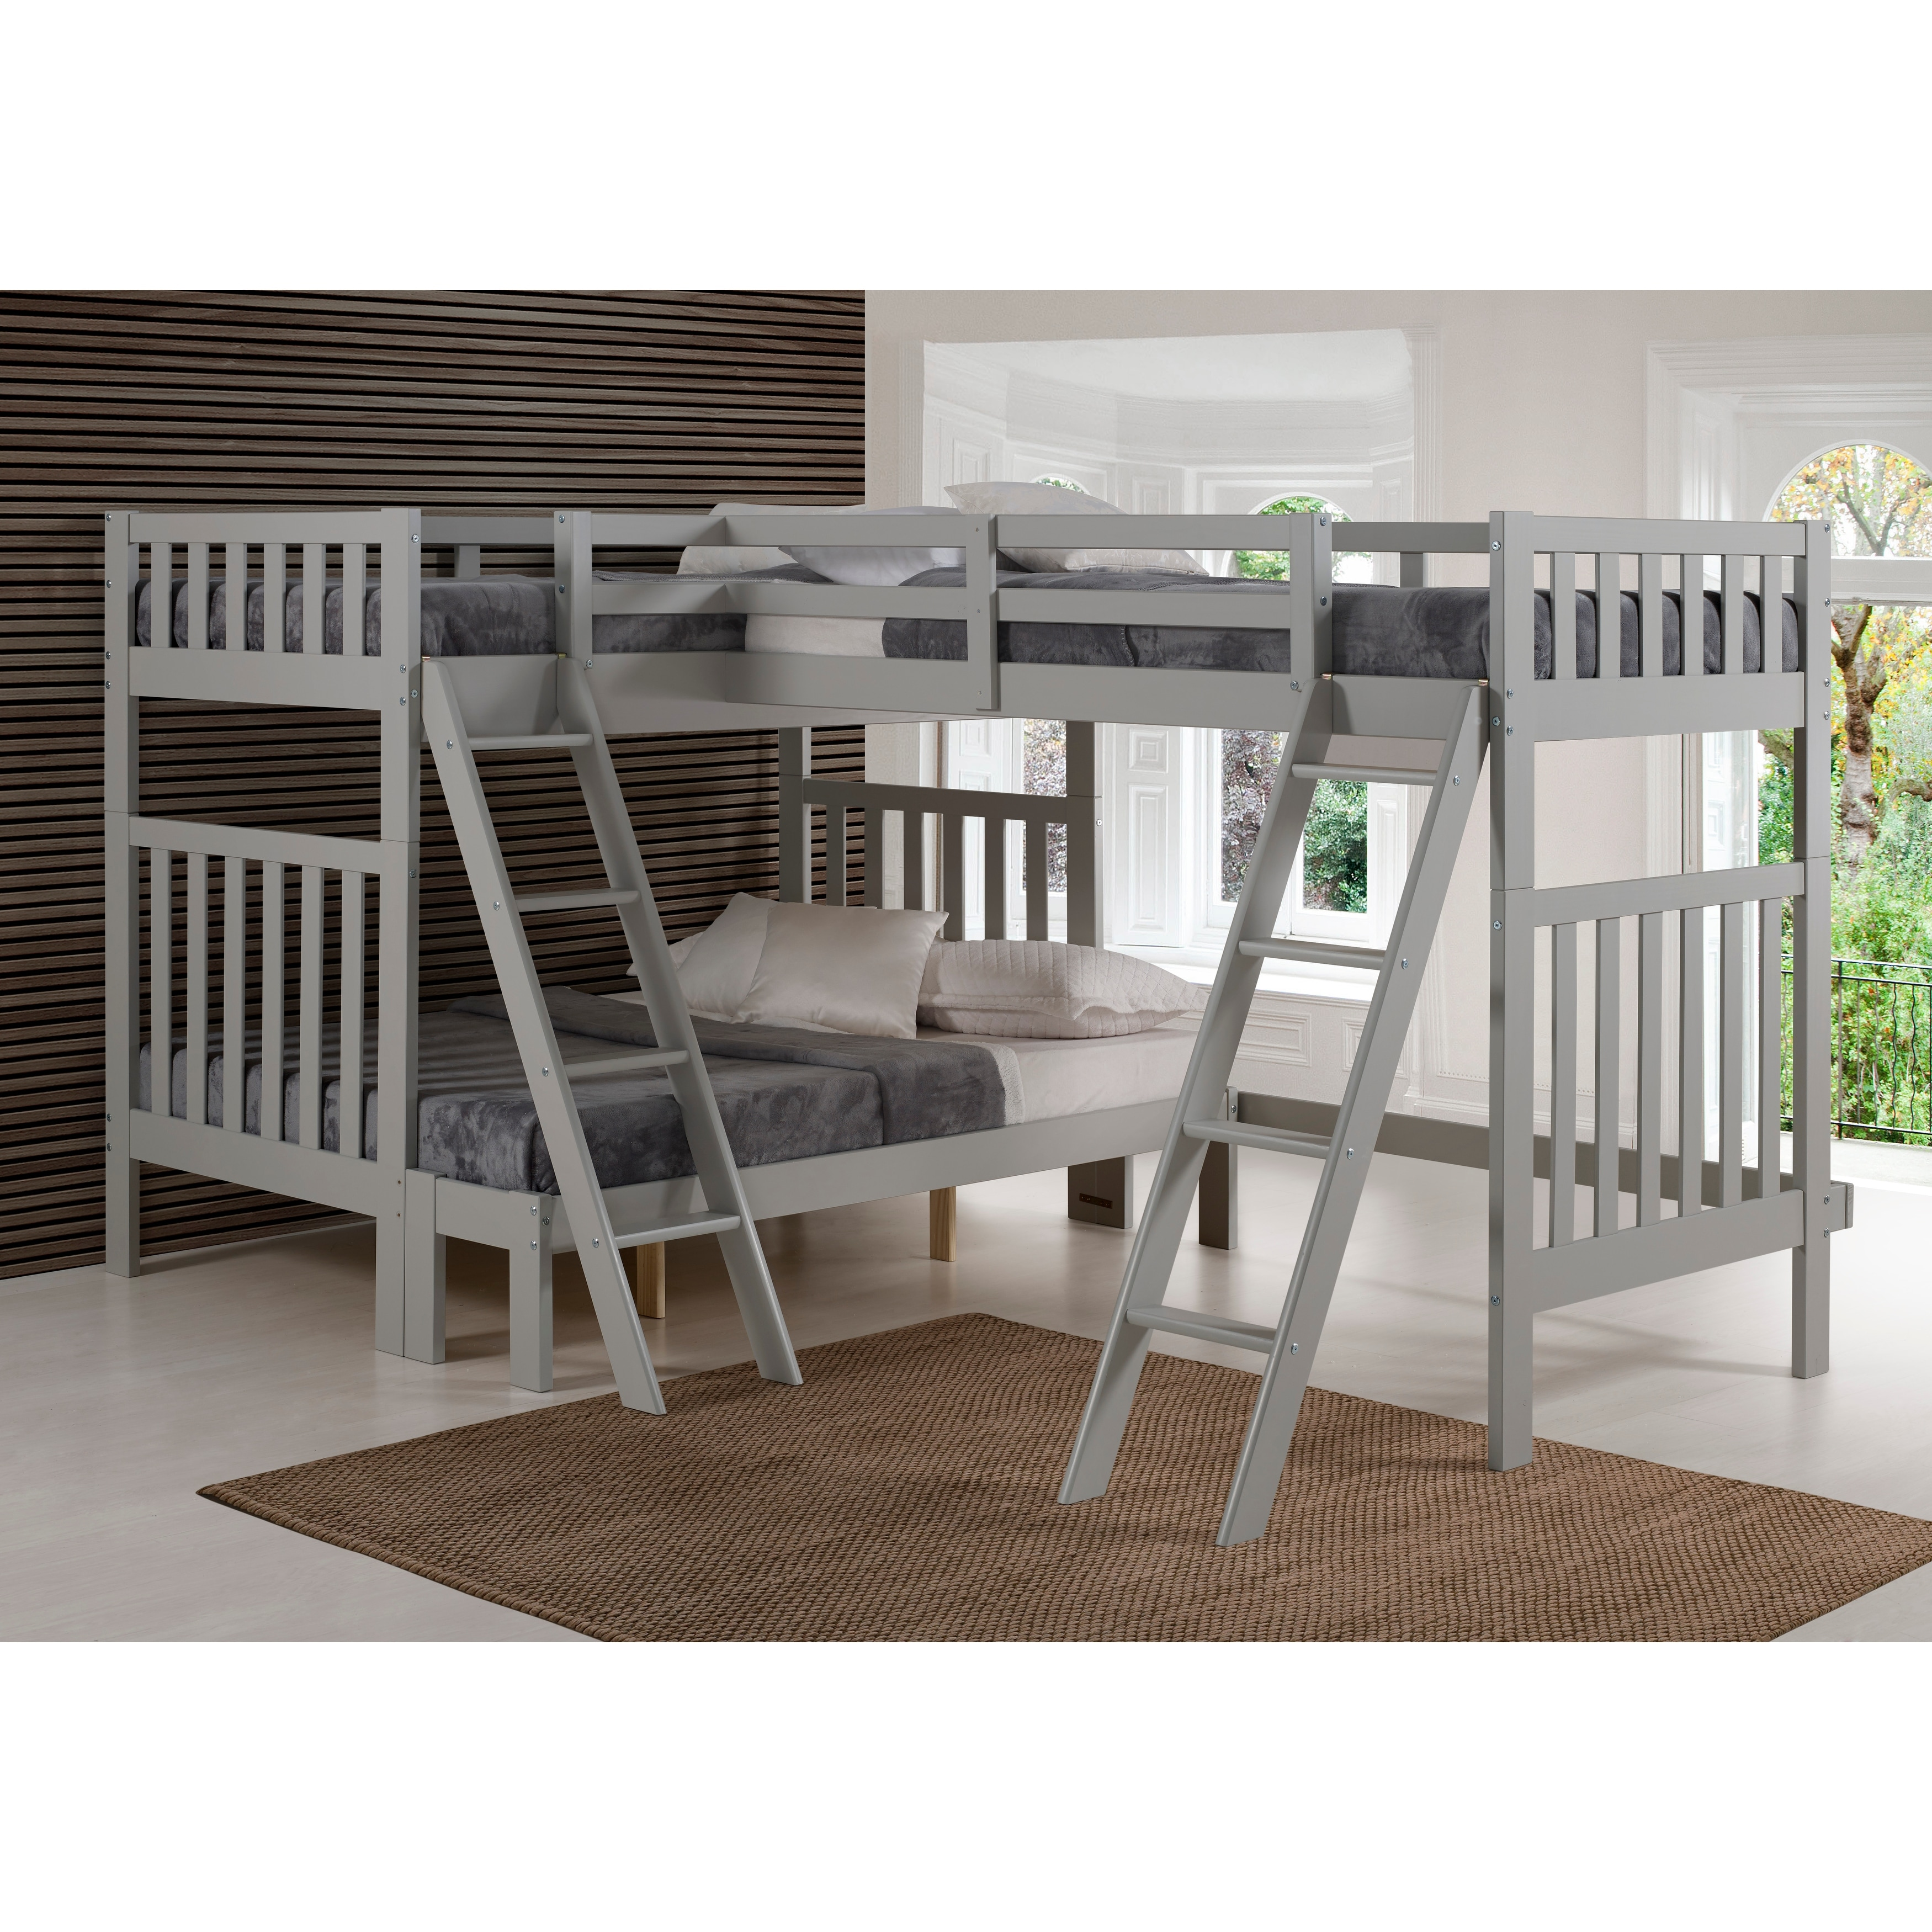 Picture of: Aurora Solid Wood Twin Over Full Bunk Bed With Tri Bunk Extension Overstock 22406188